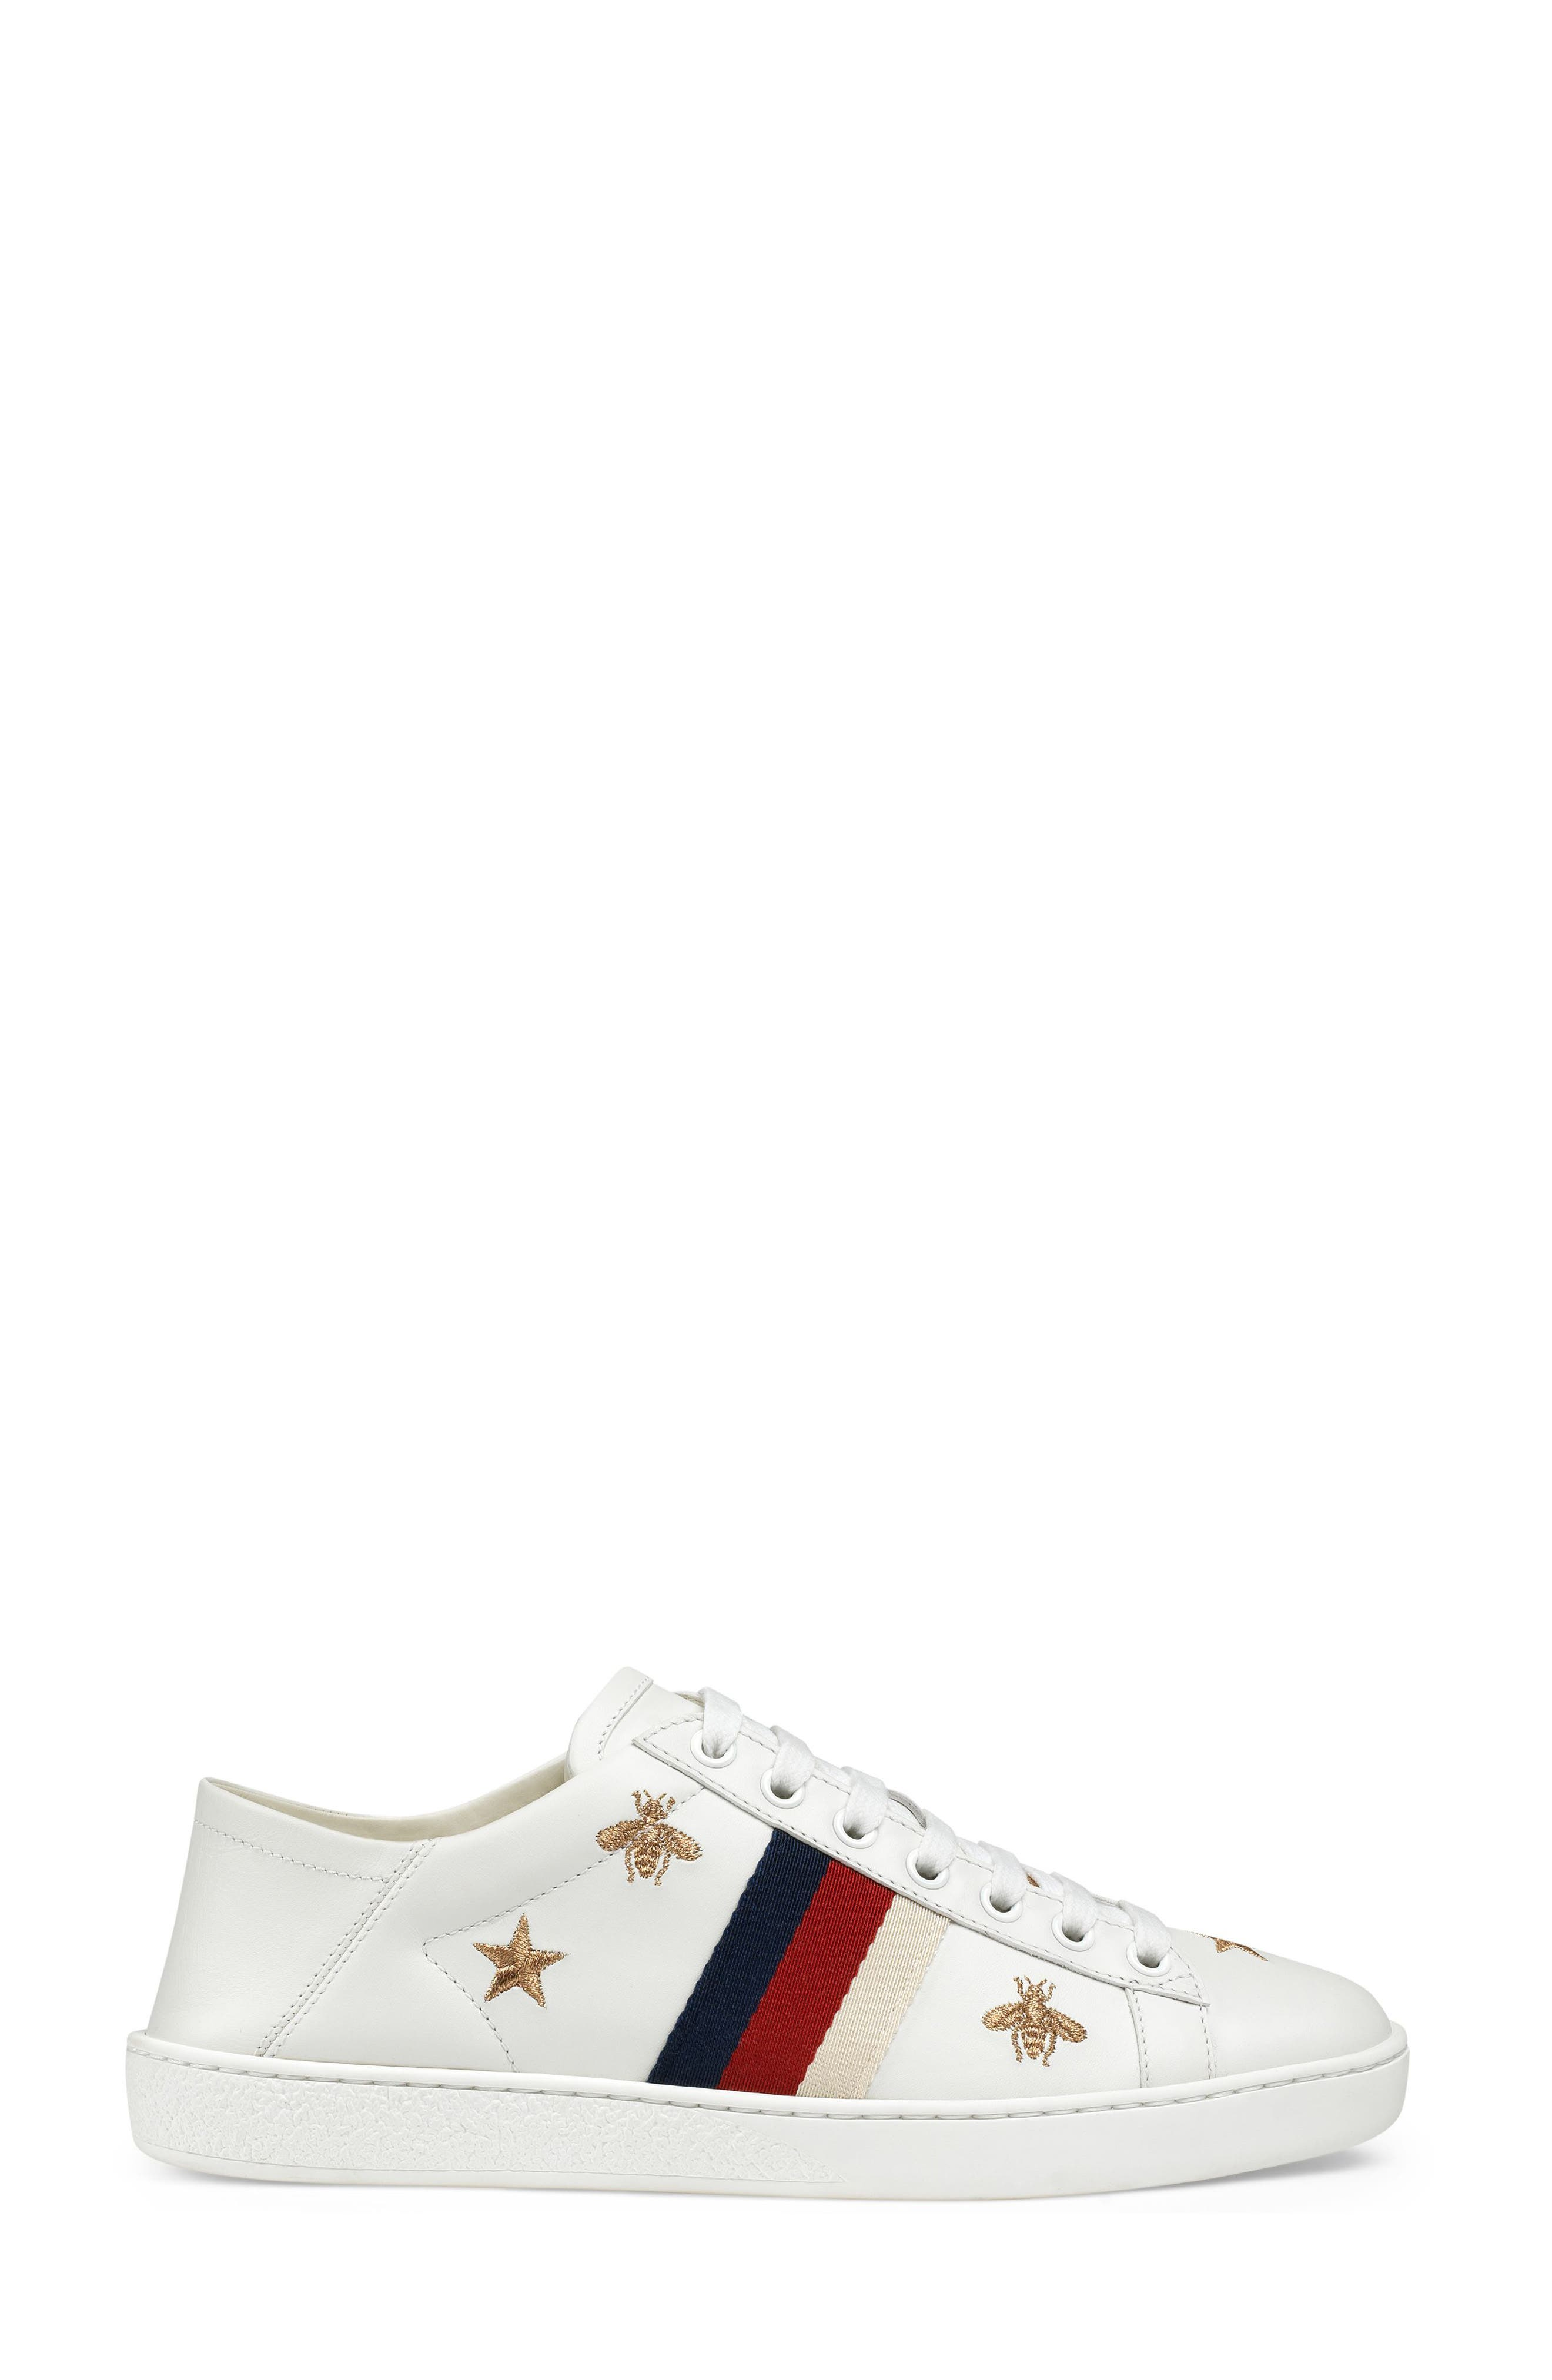 GUCCI New Ace Convertible Heel Sneaker, Main, color, WHITE/ BEE PRINT